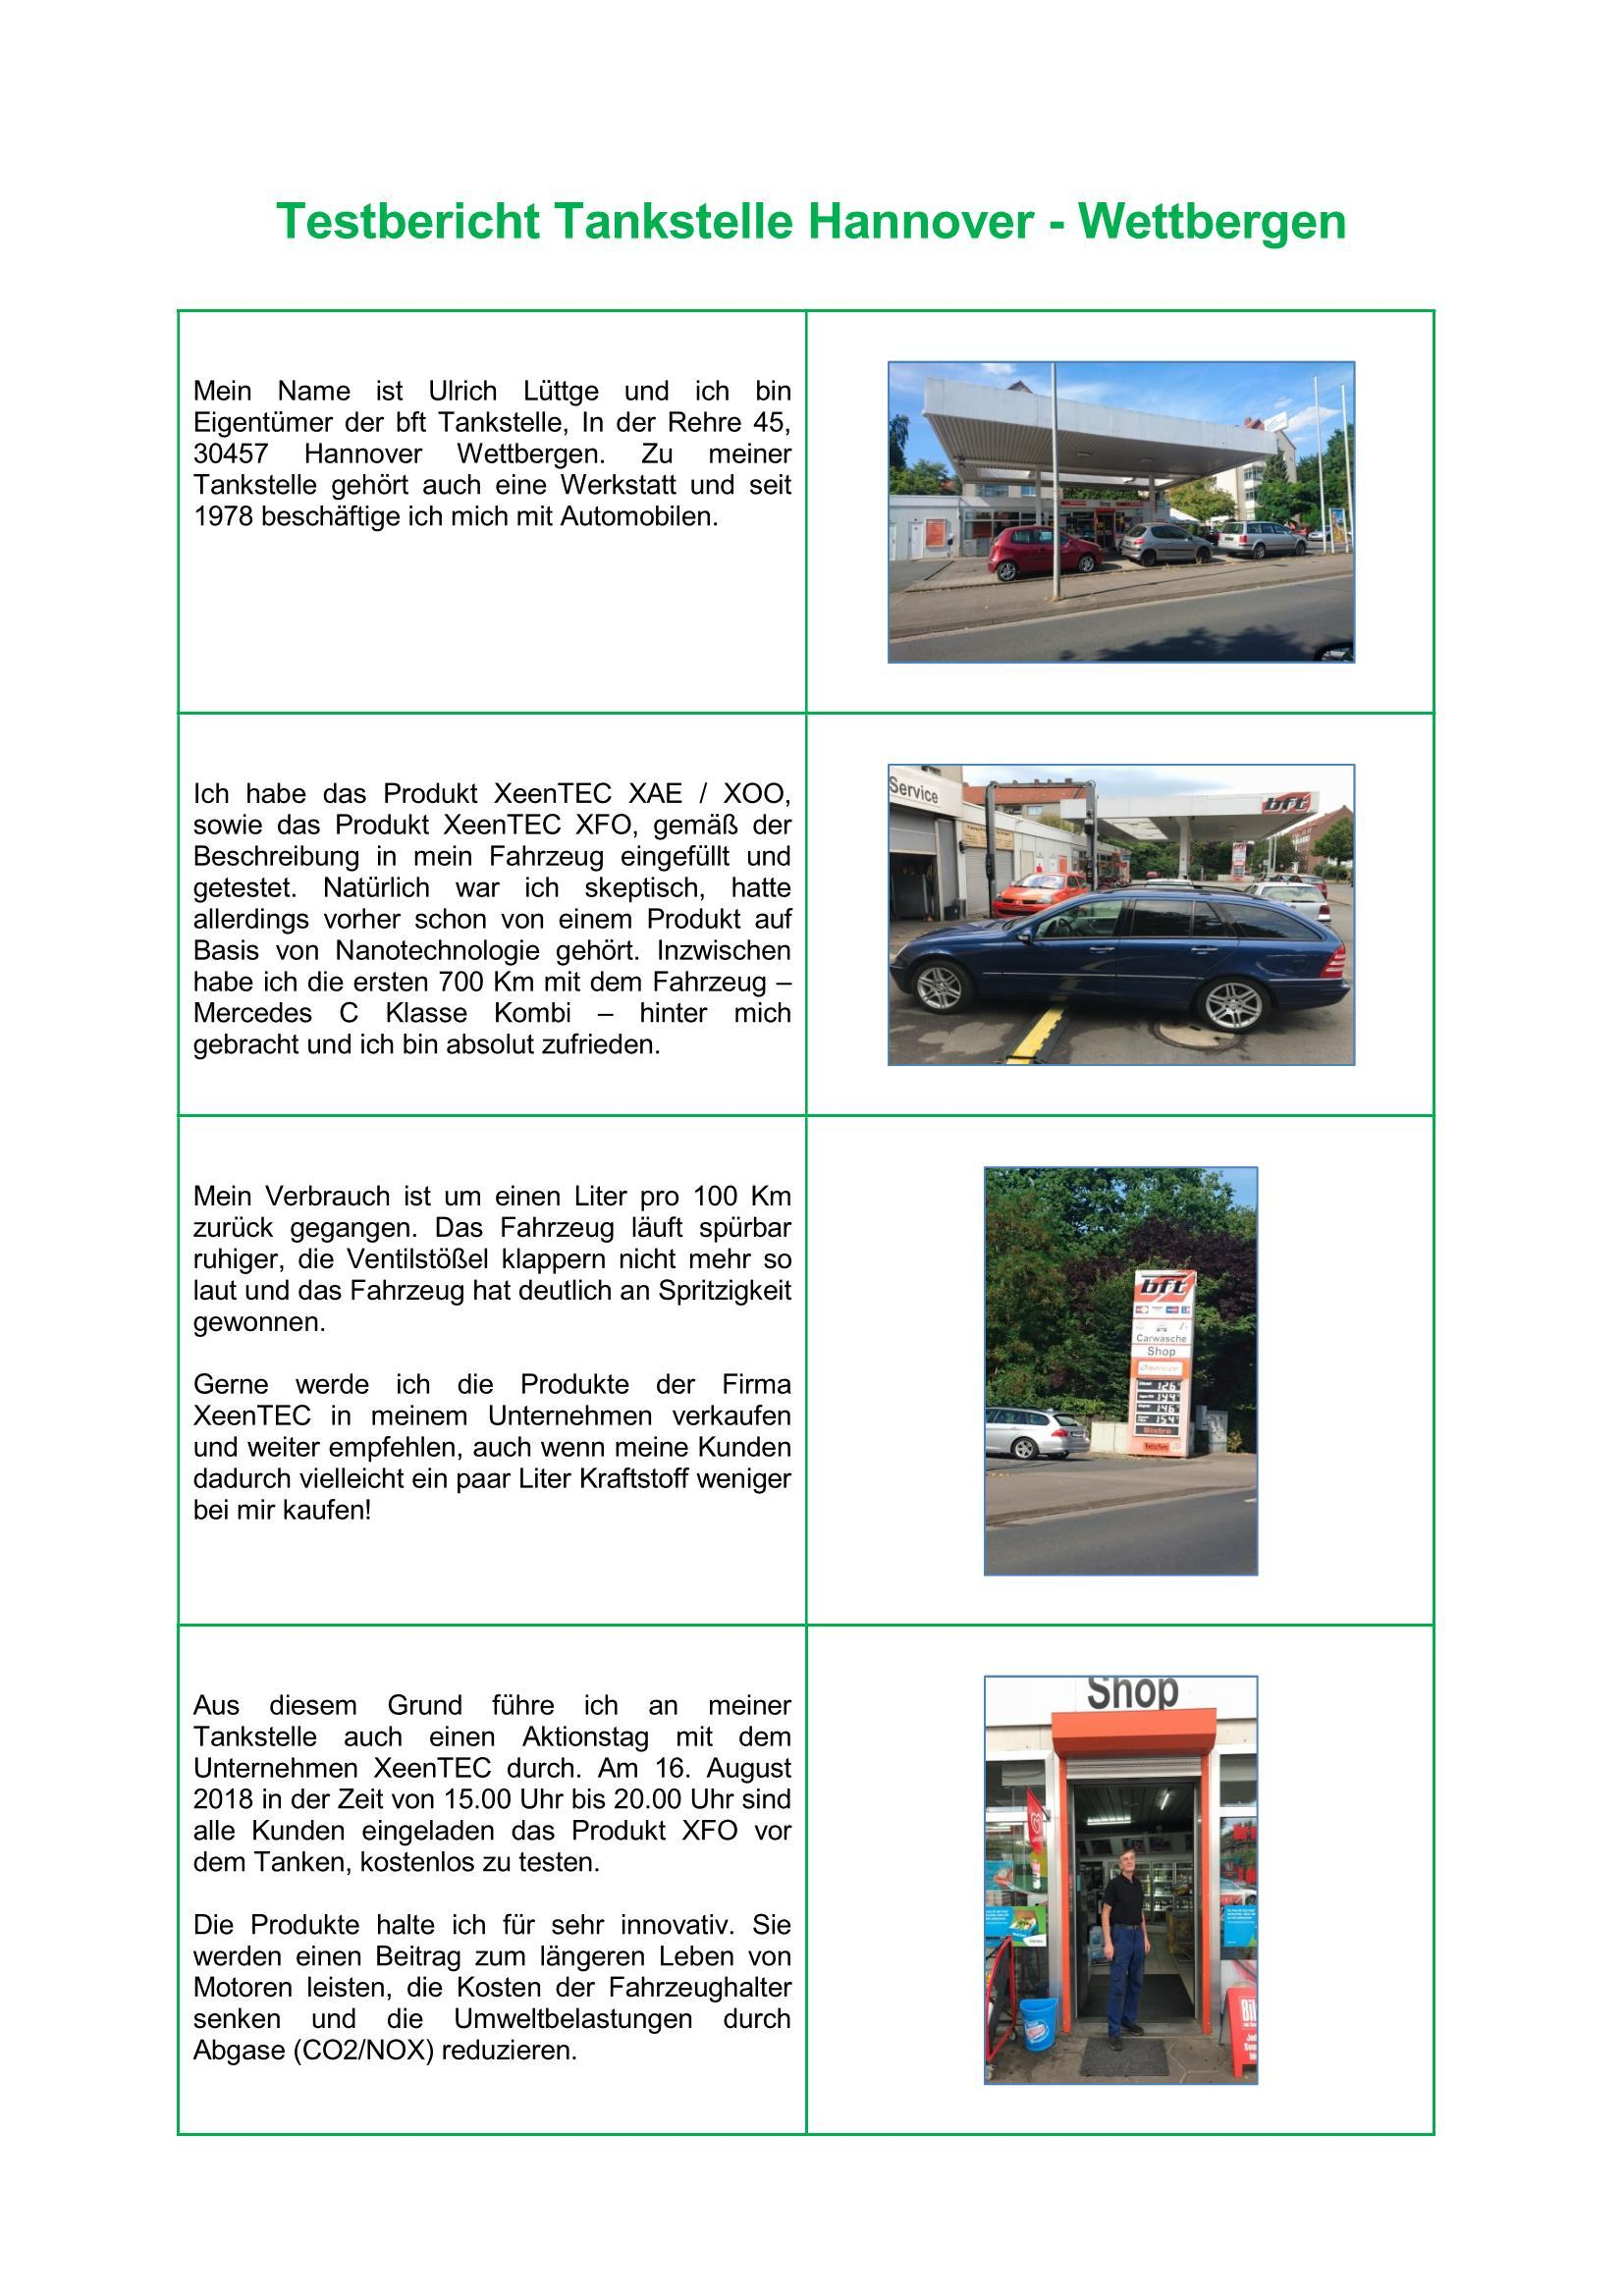 Testbericht_Tankstelle_Hannover_Page_1